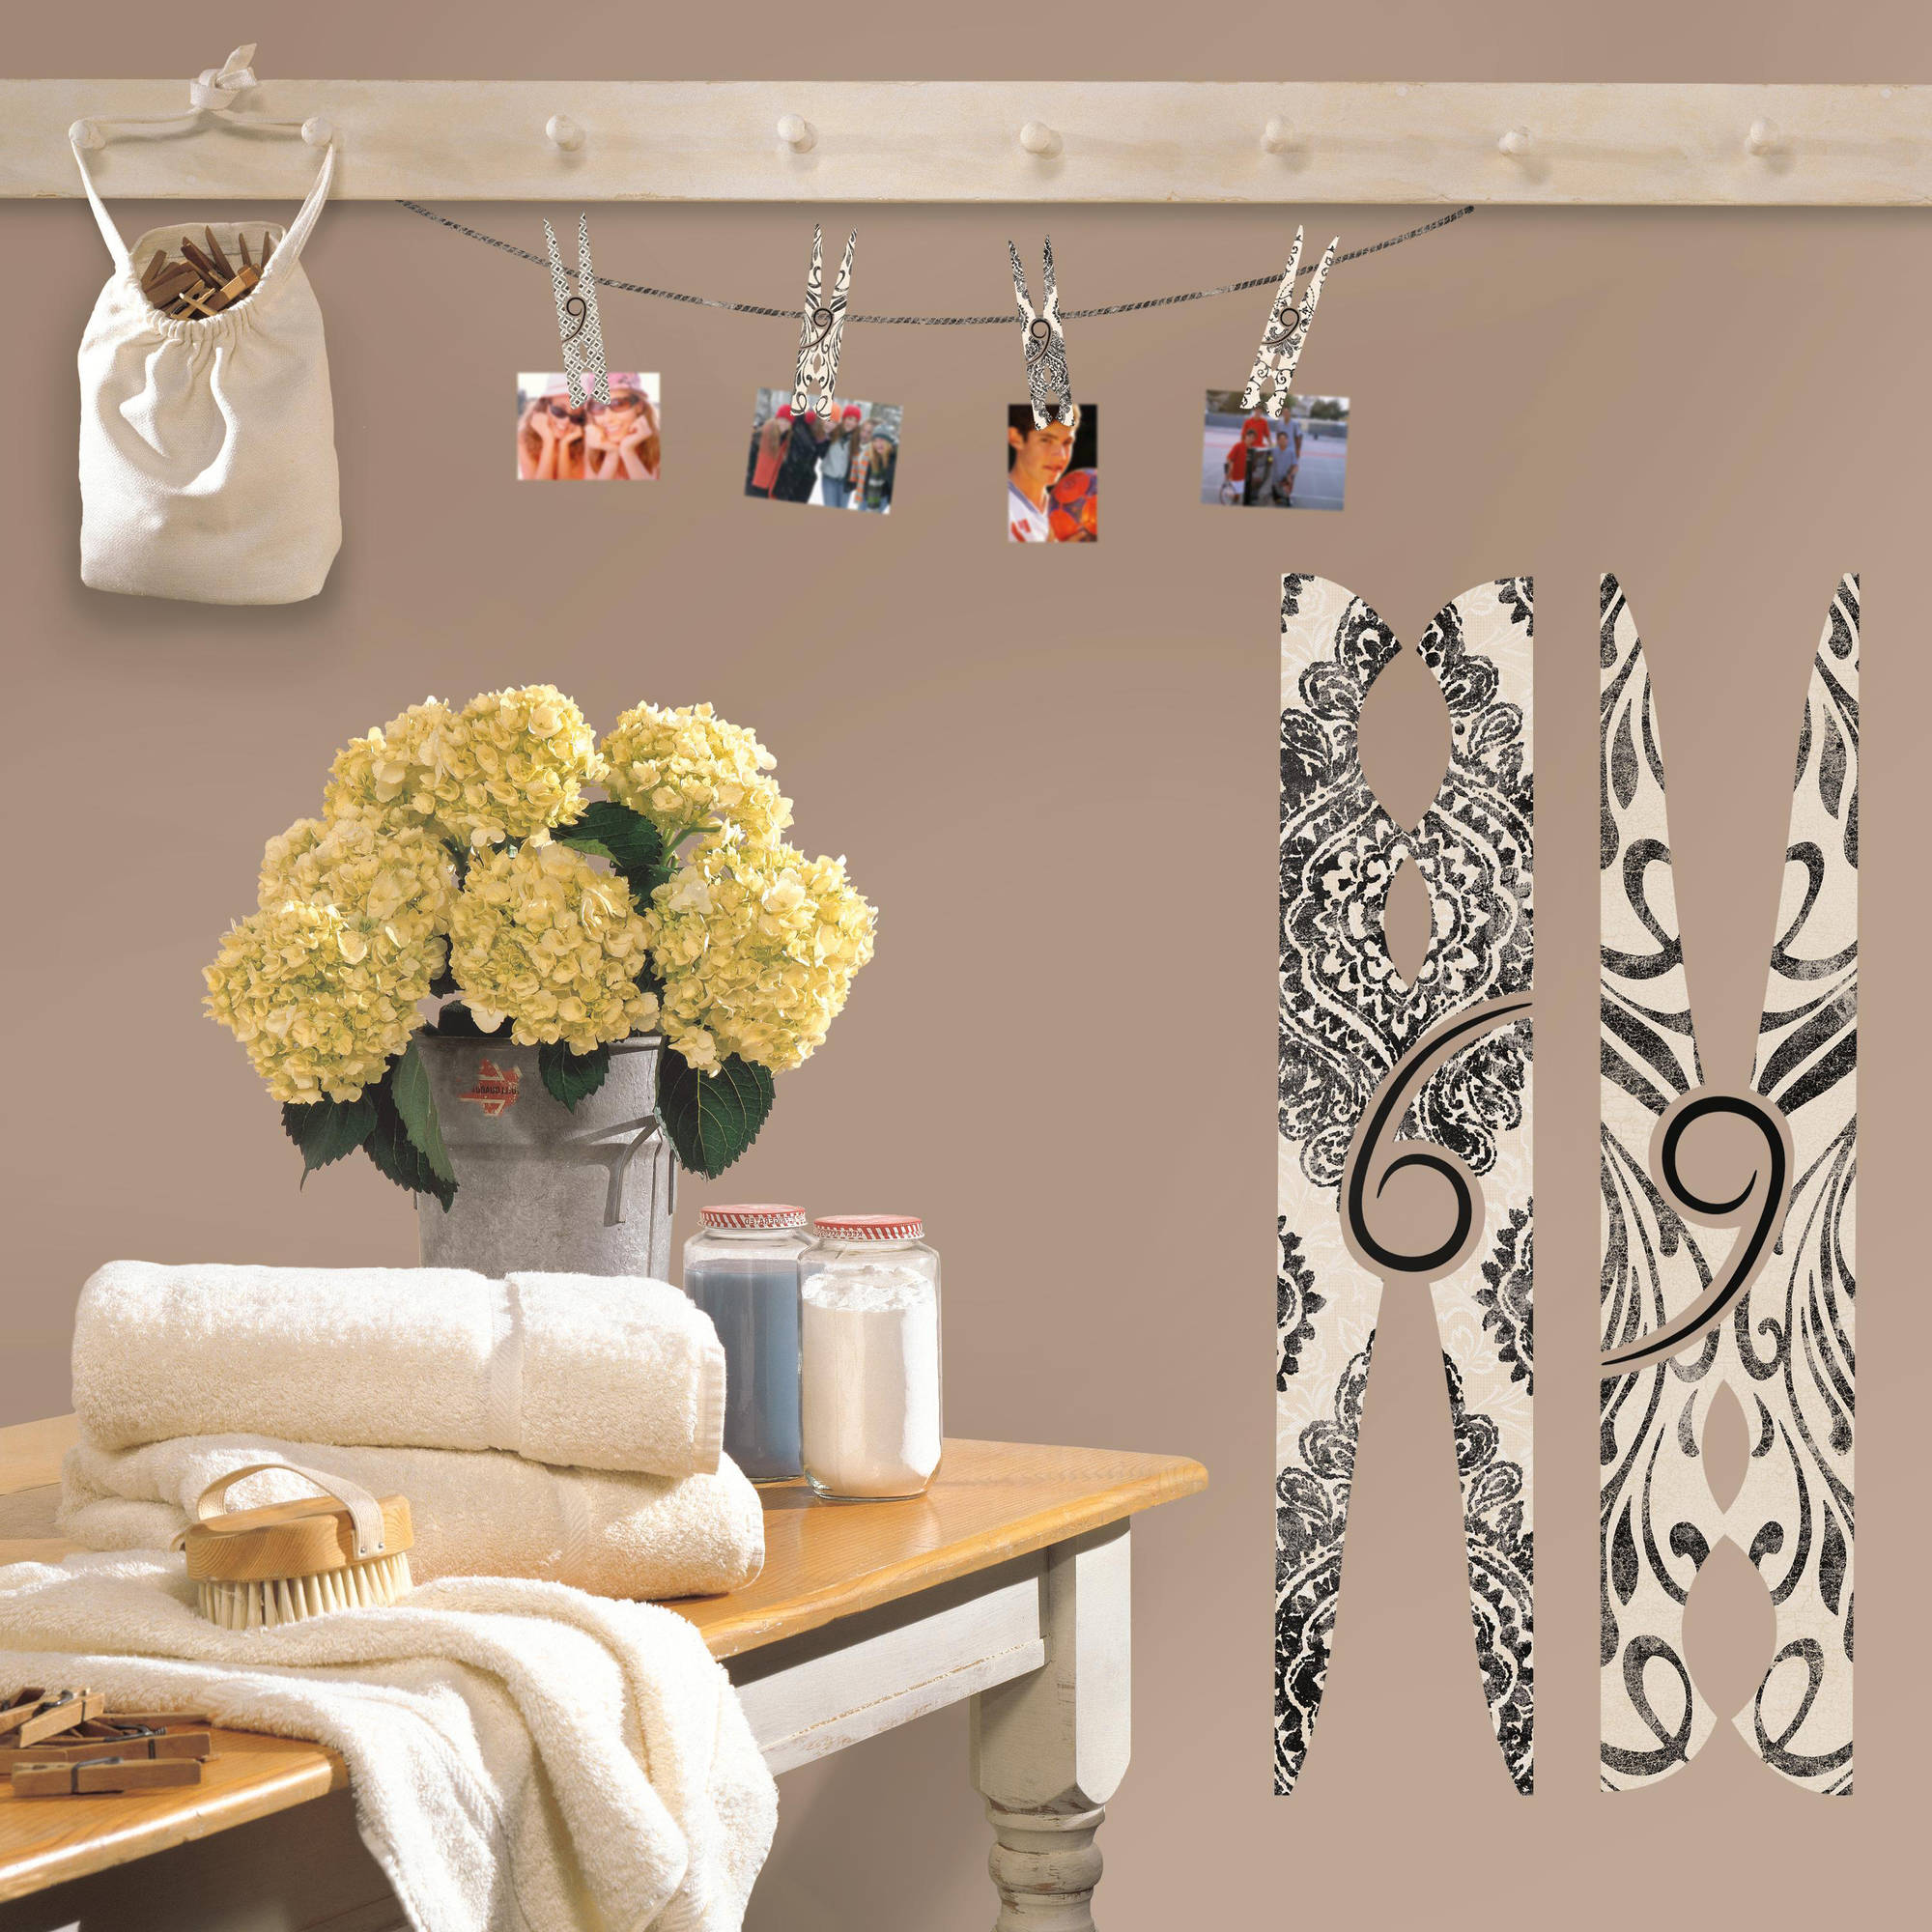 Clothes Pins Peel and Stick Giant Wall Decals